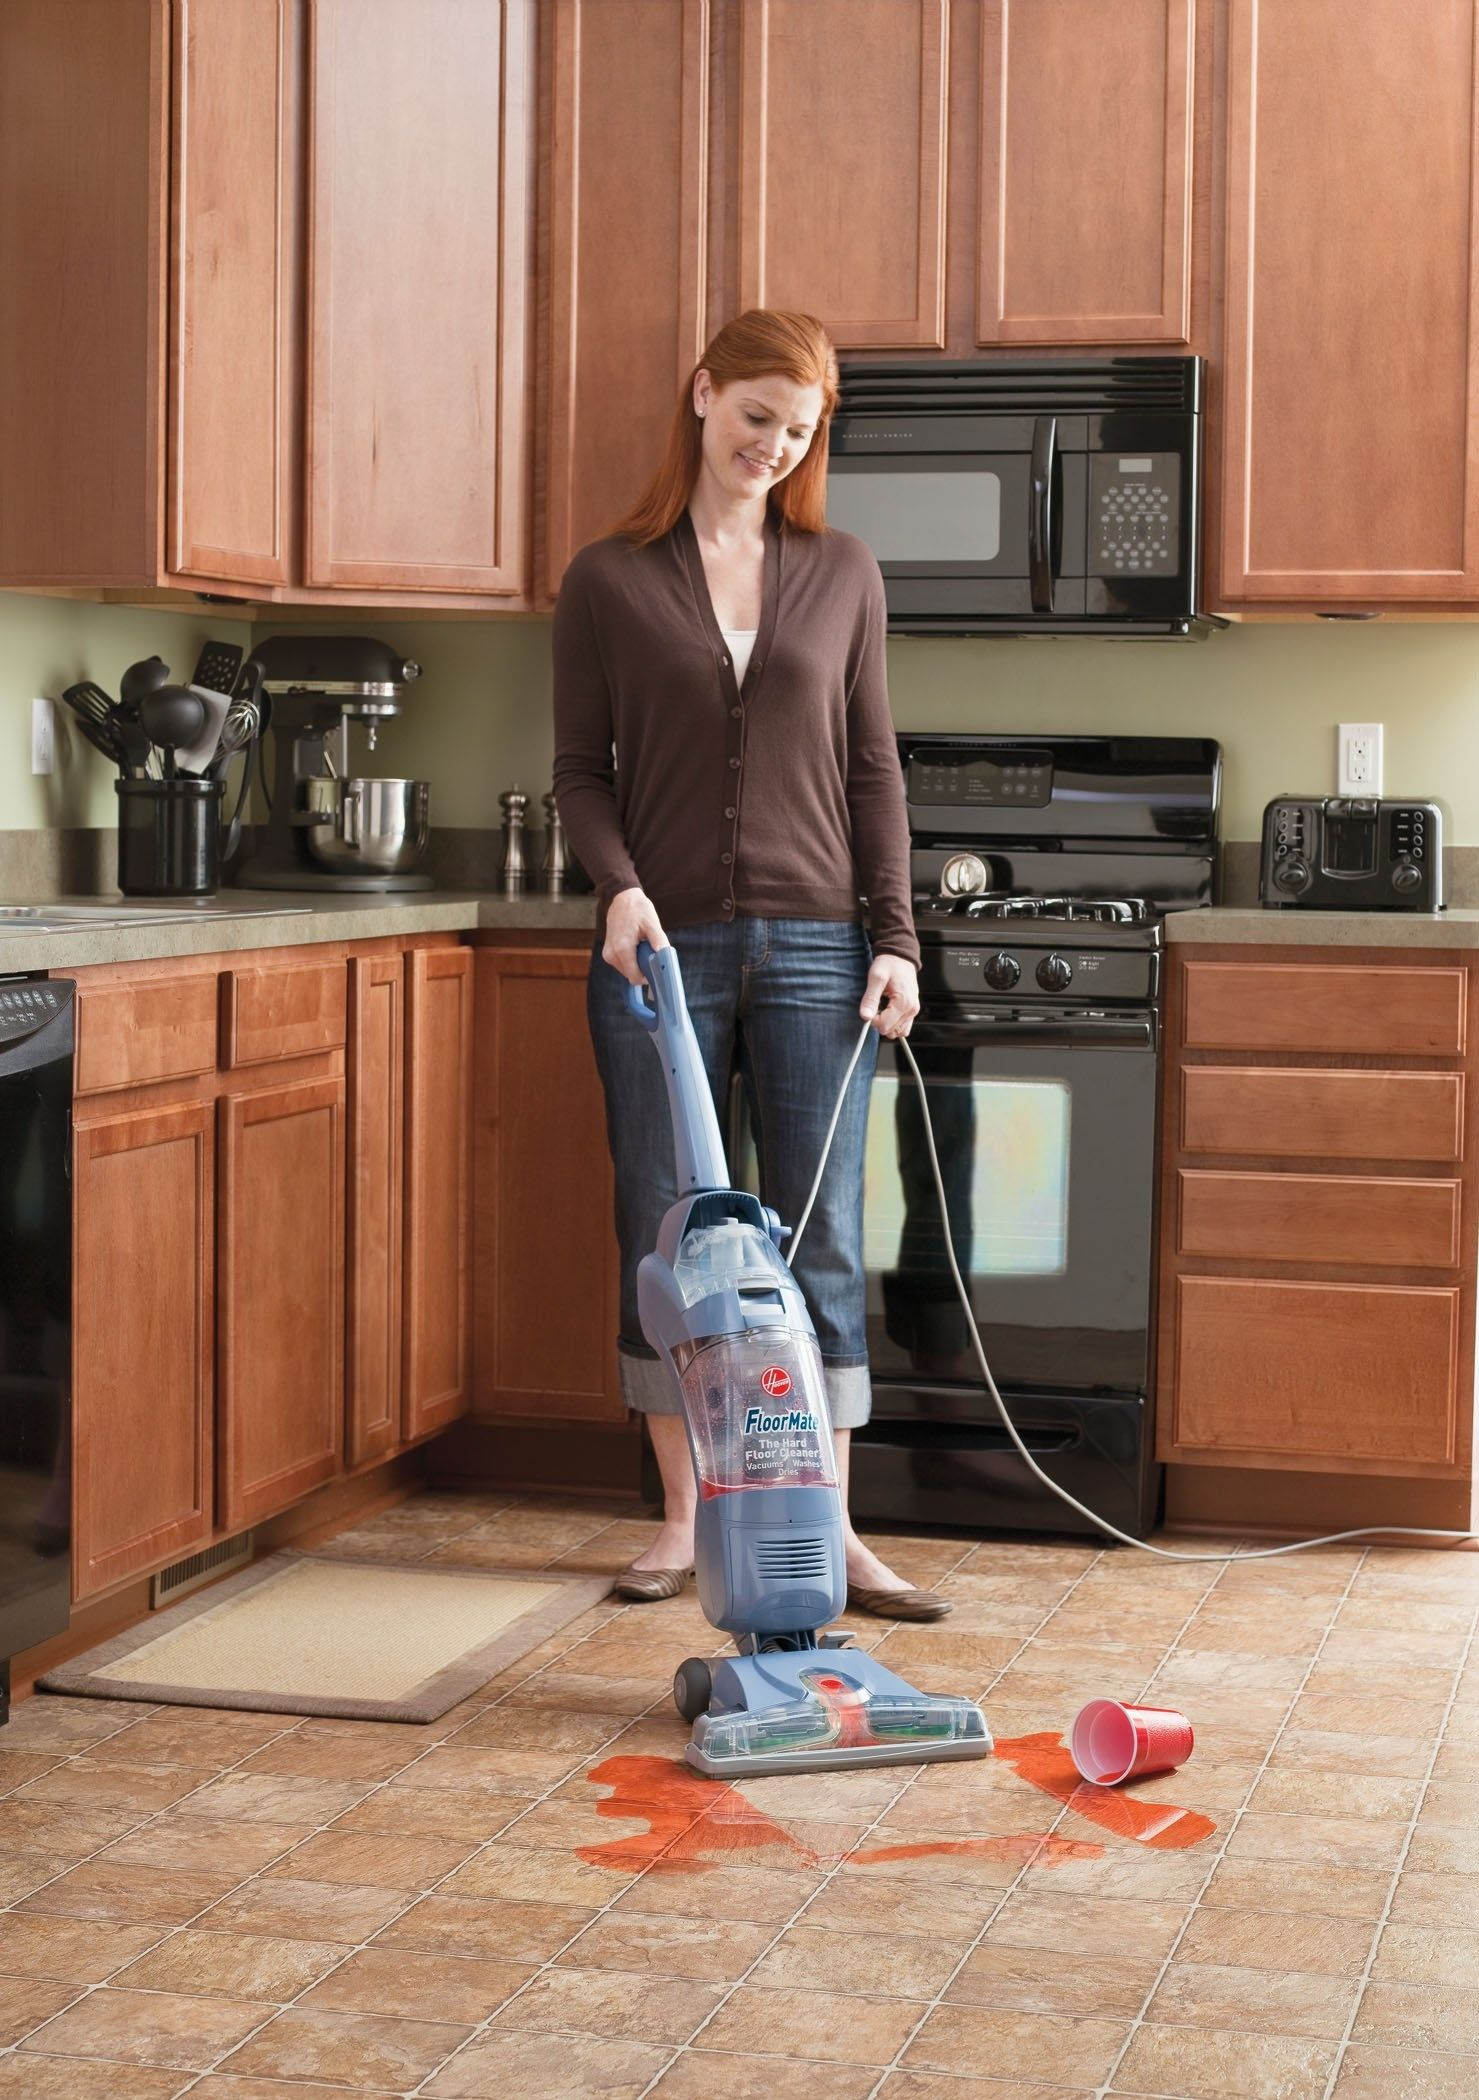 Best wet dry vacuum for tile floors httpnextsoft21 hoover hardwood floor cleaner floormate spinscrub with bonus hard floor wipes corded bare floor cleaner clean while gently scrubbing sealed wood and vinyl dailygadgetfo Images